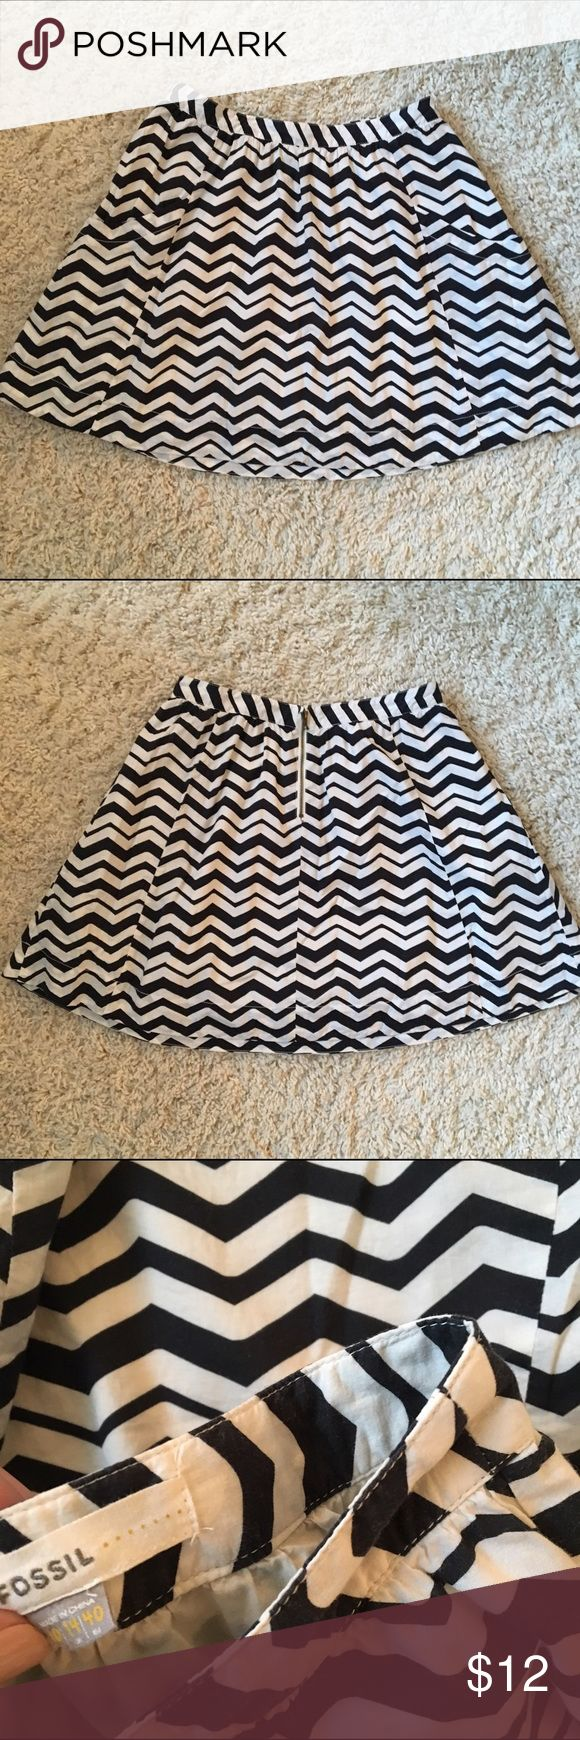 Fossil black and white chevron skirt ▪️▫️Fossil black and white chevron skirt! Adorable pockets and zipper detail! Great for Spring and Summer ▫️▪️ Fossil Skirts Midi